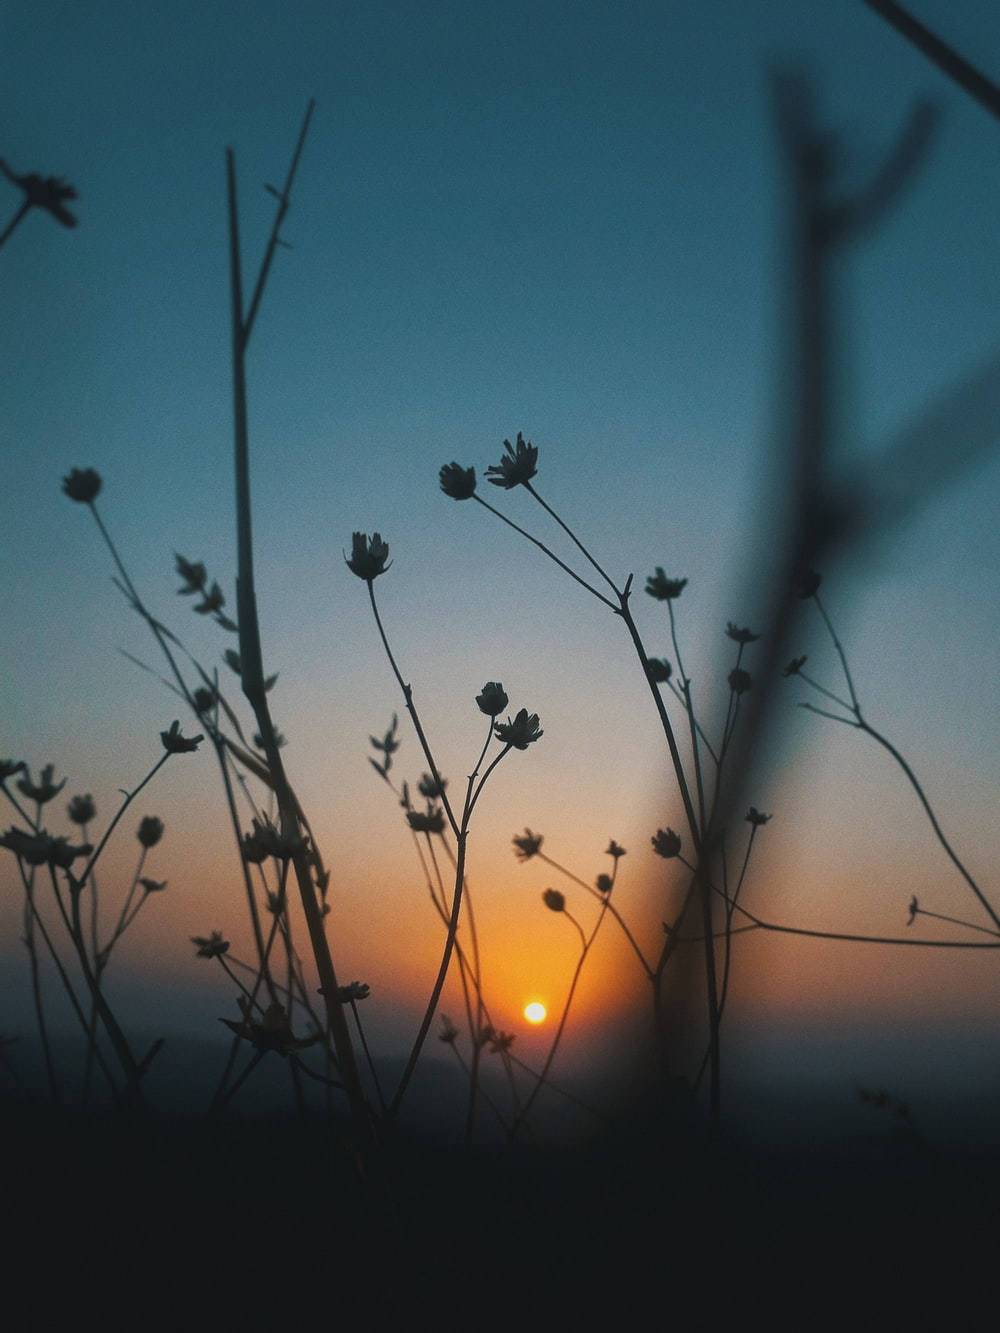 silhouette of flowers during nighttime